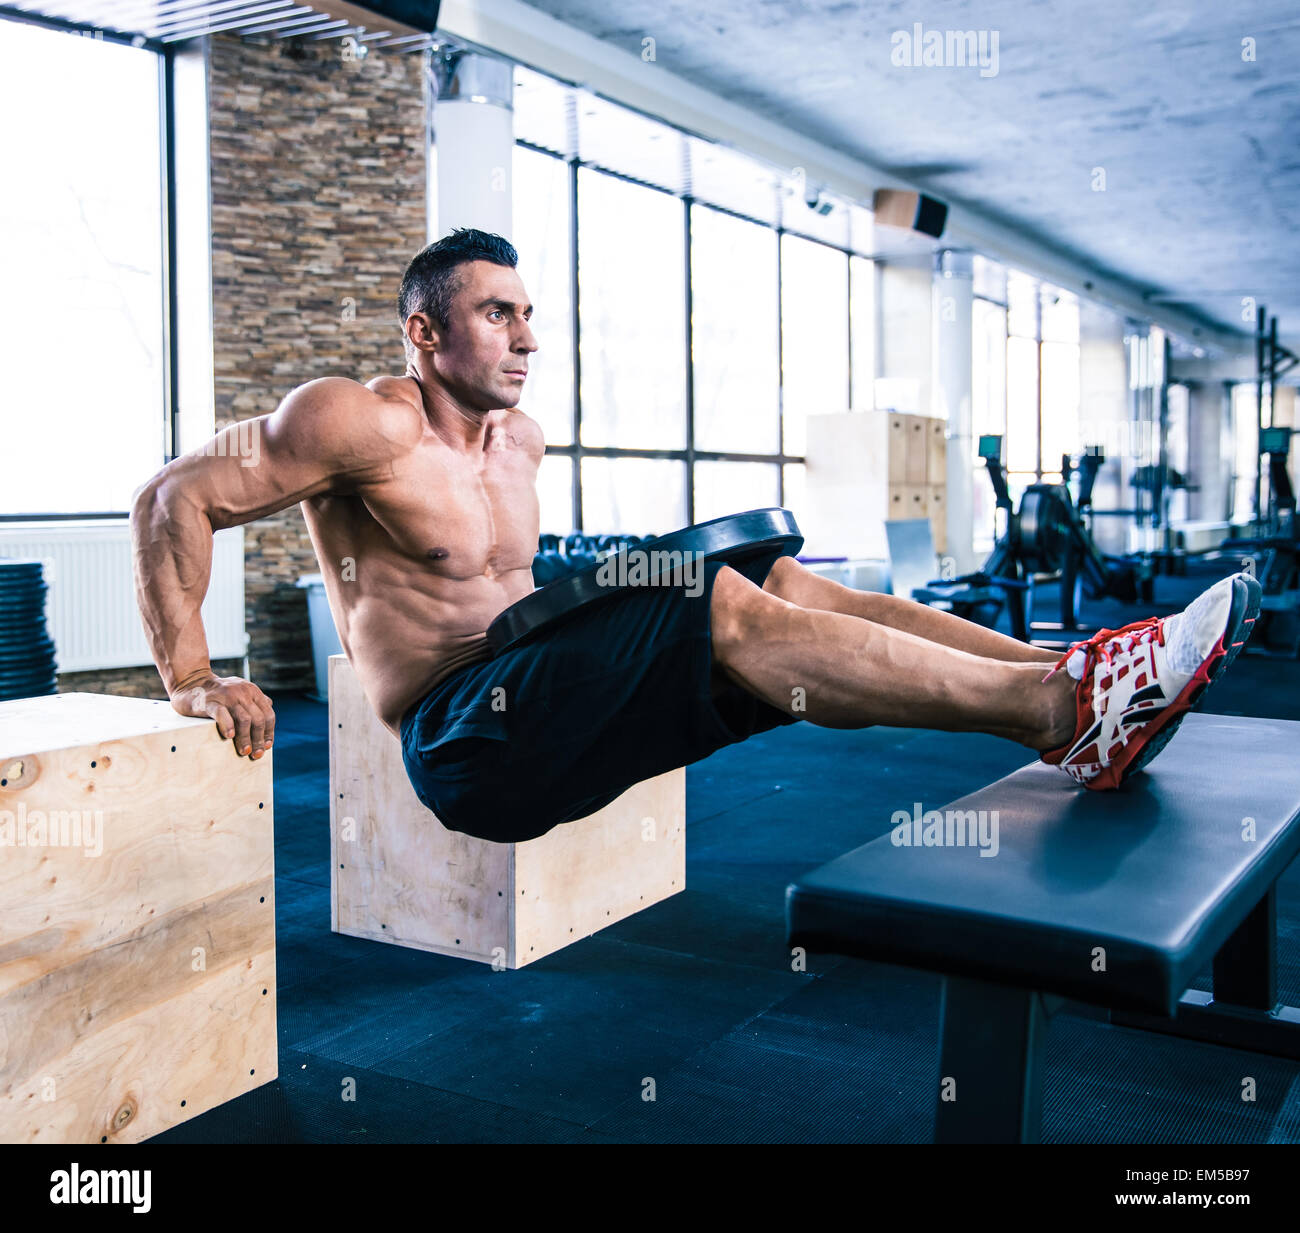 Bel homme musclé à l'entraînement de fitness crossfit Photo Stock